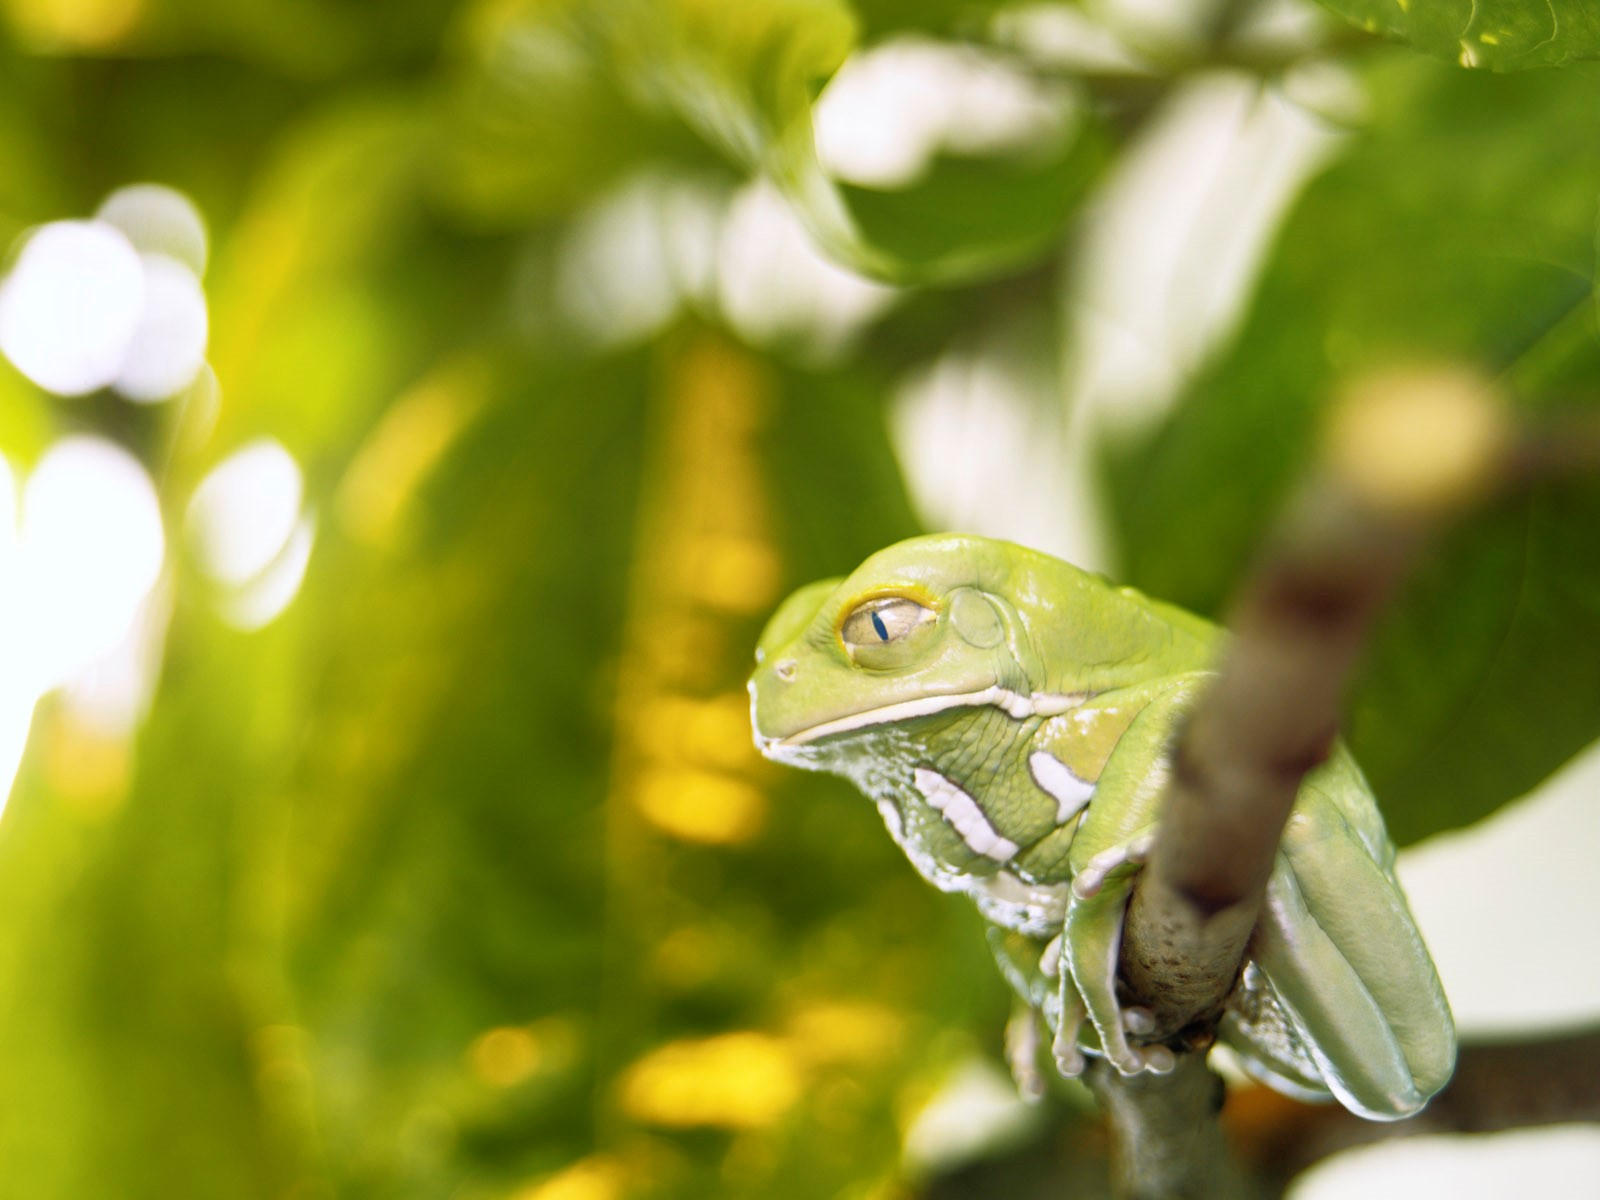 Green Frog Wallpaper Hd